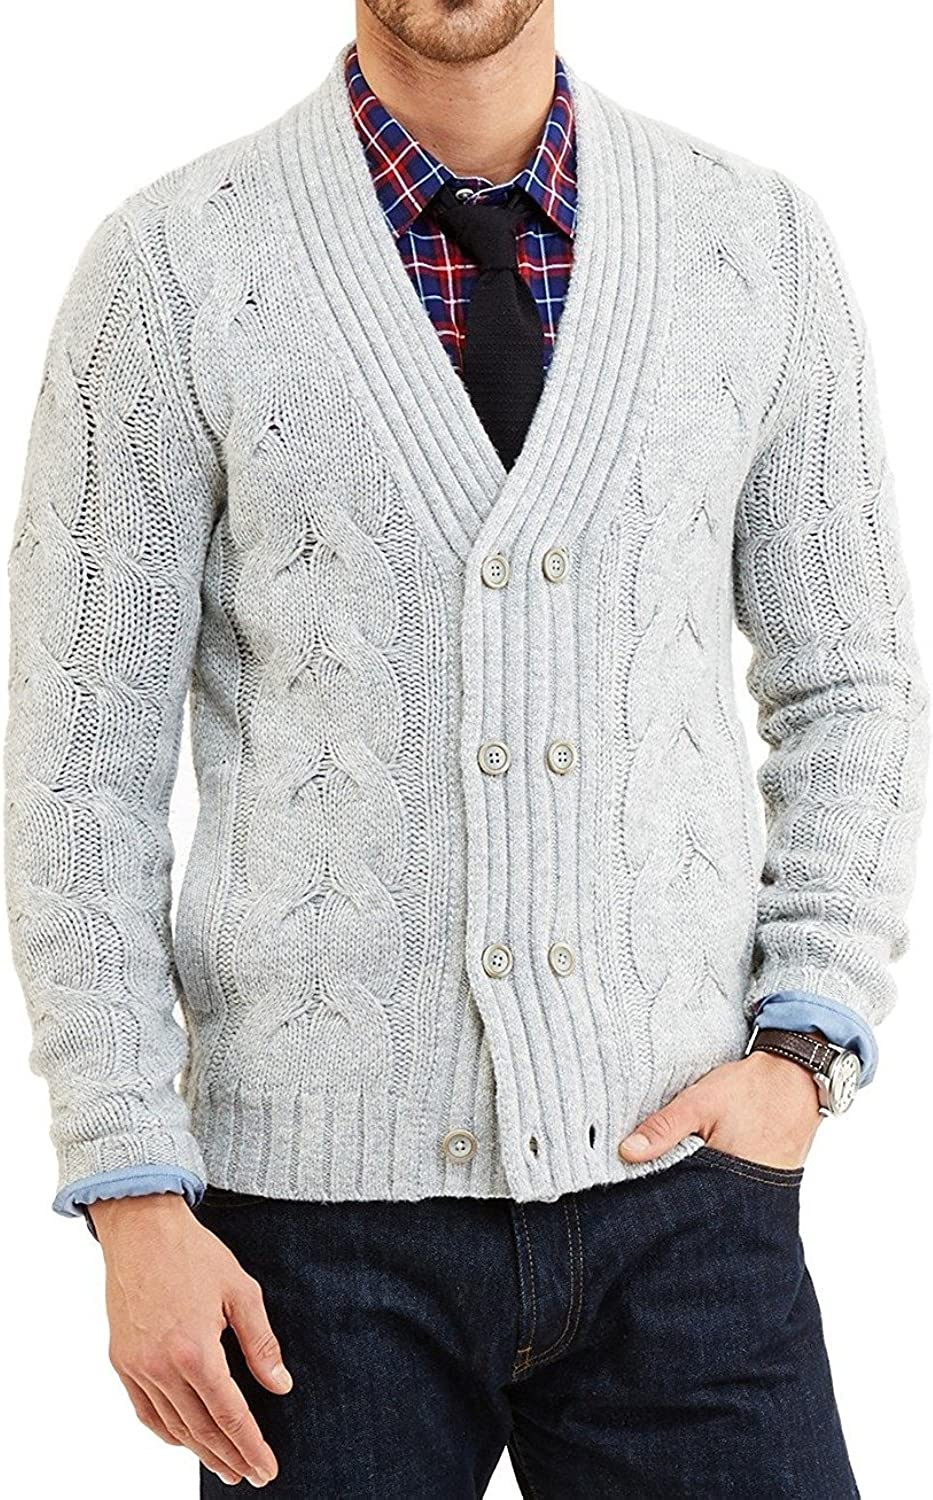 Nautica Men's Double Breasted Cable Knit Cardigan Grey